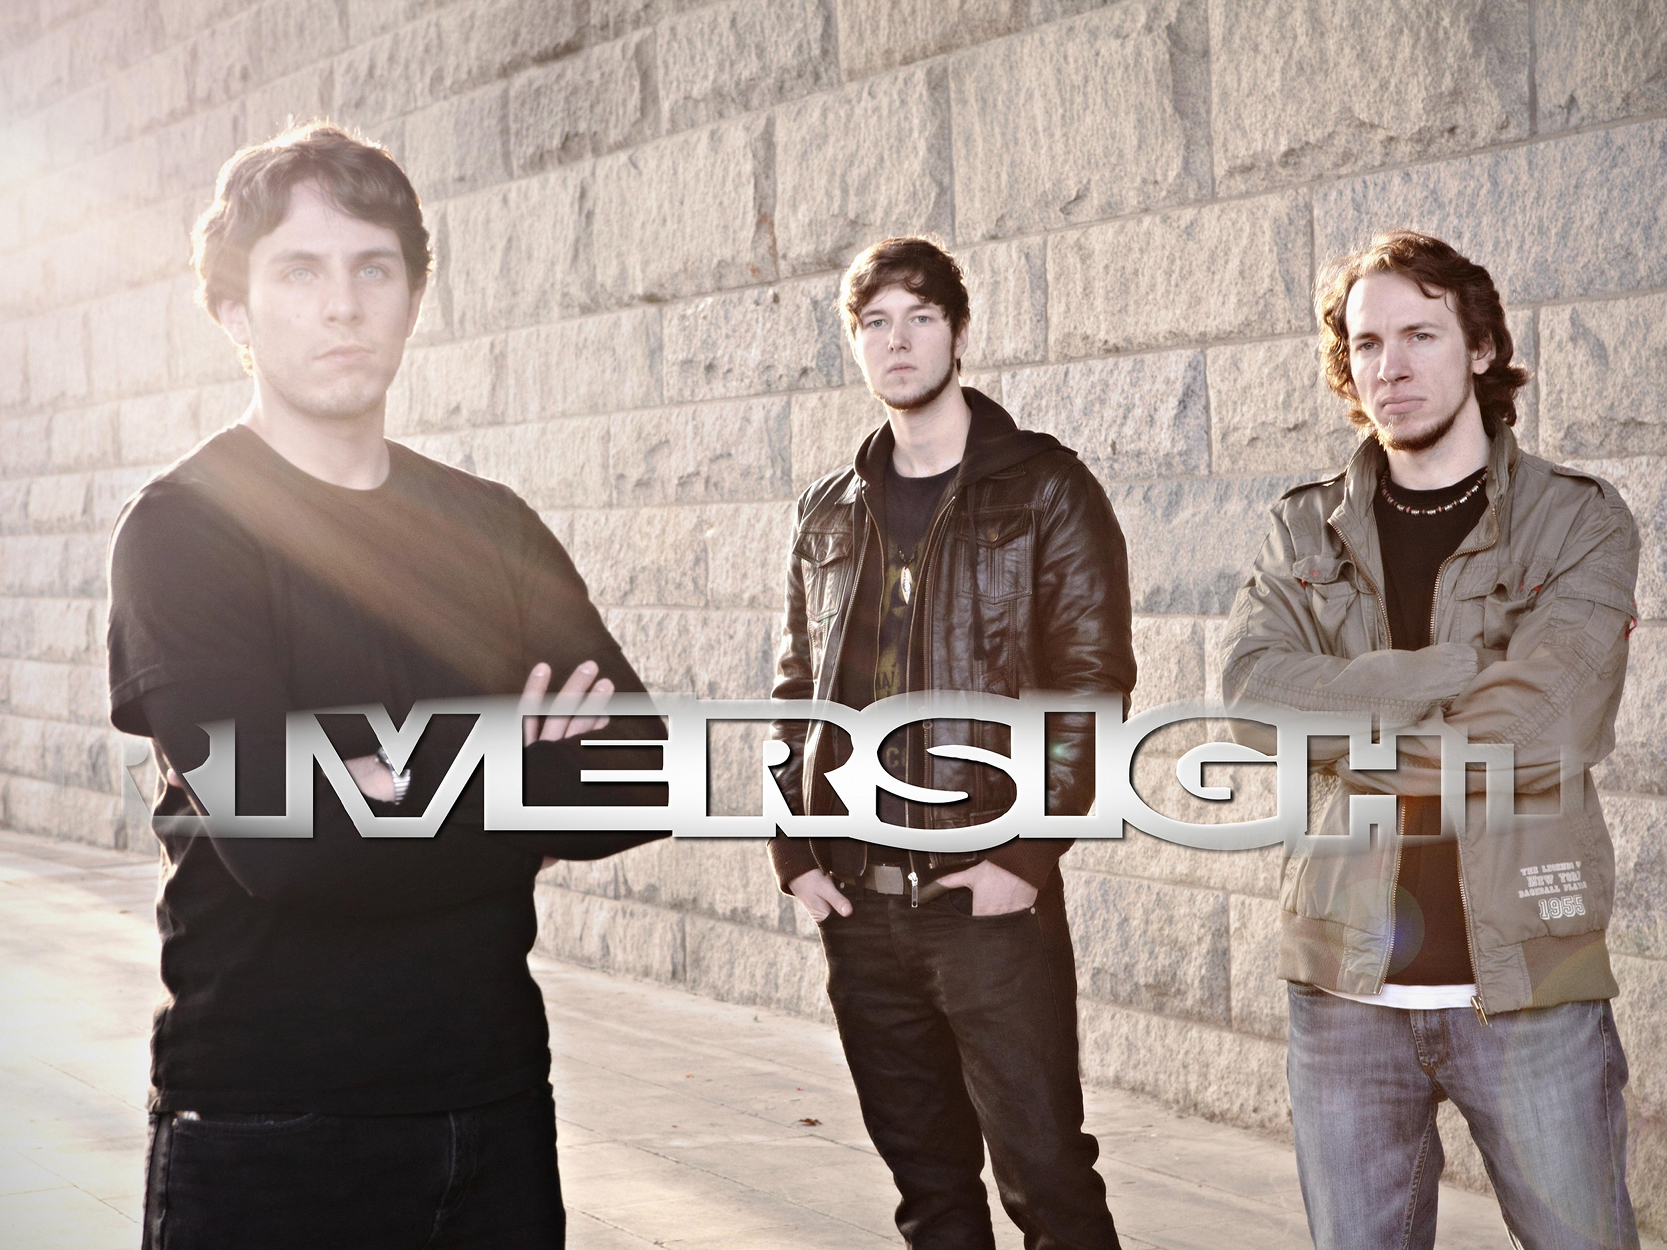 riversight 5